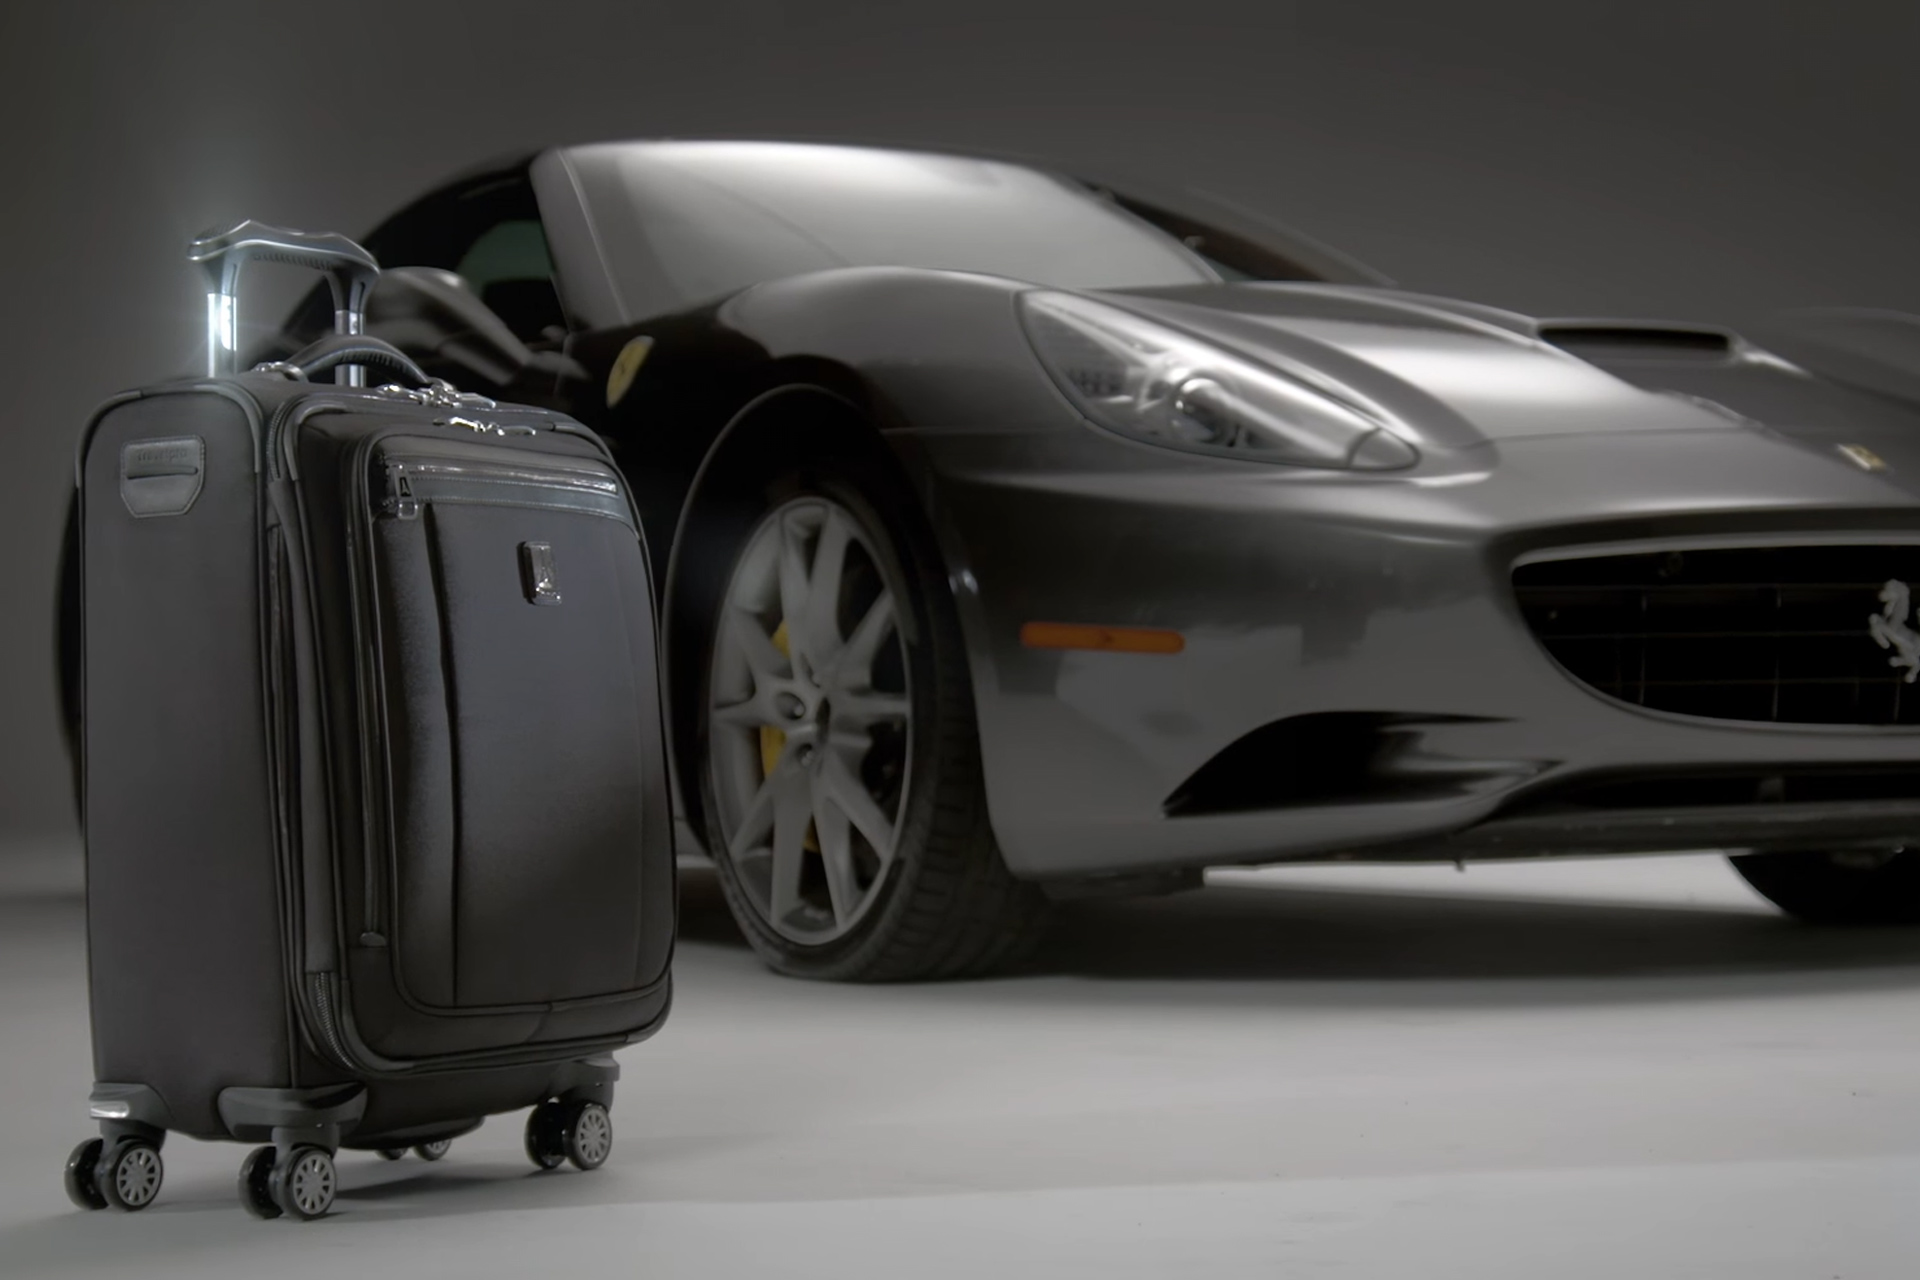 TravelPro Platinum Magna 2 Carry On Suiter Luggage